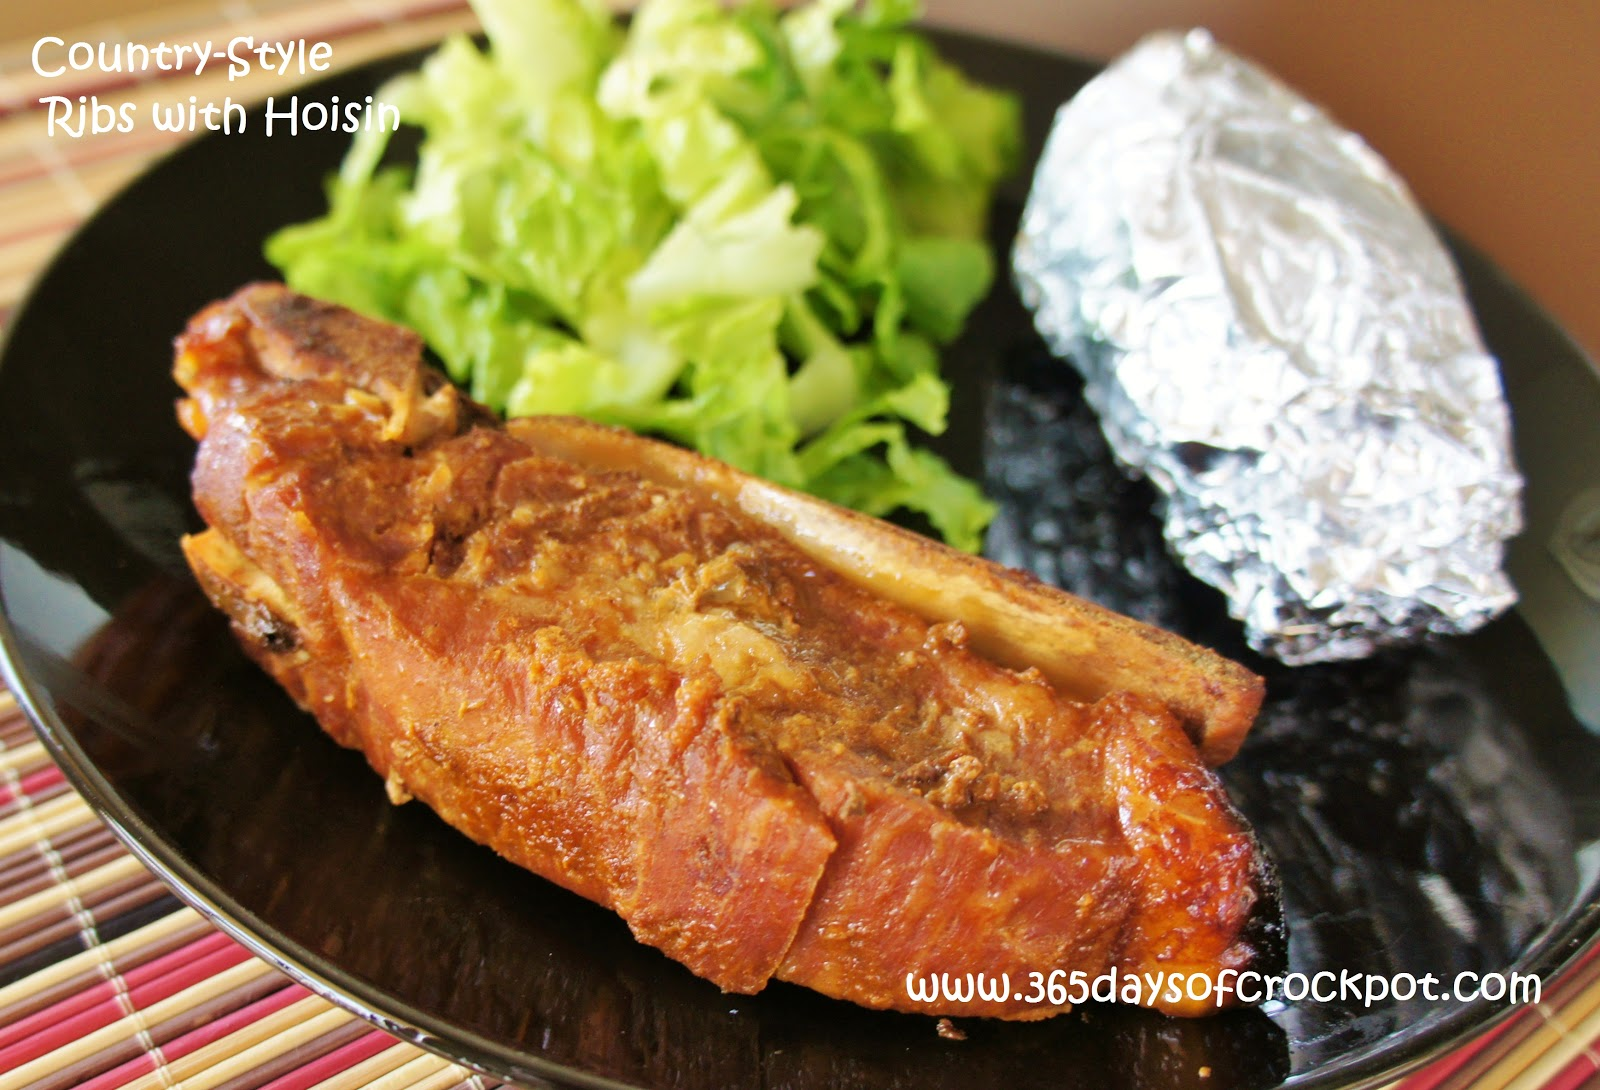 Crockpot asian boneless country style ribs